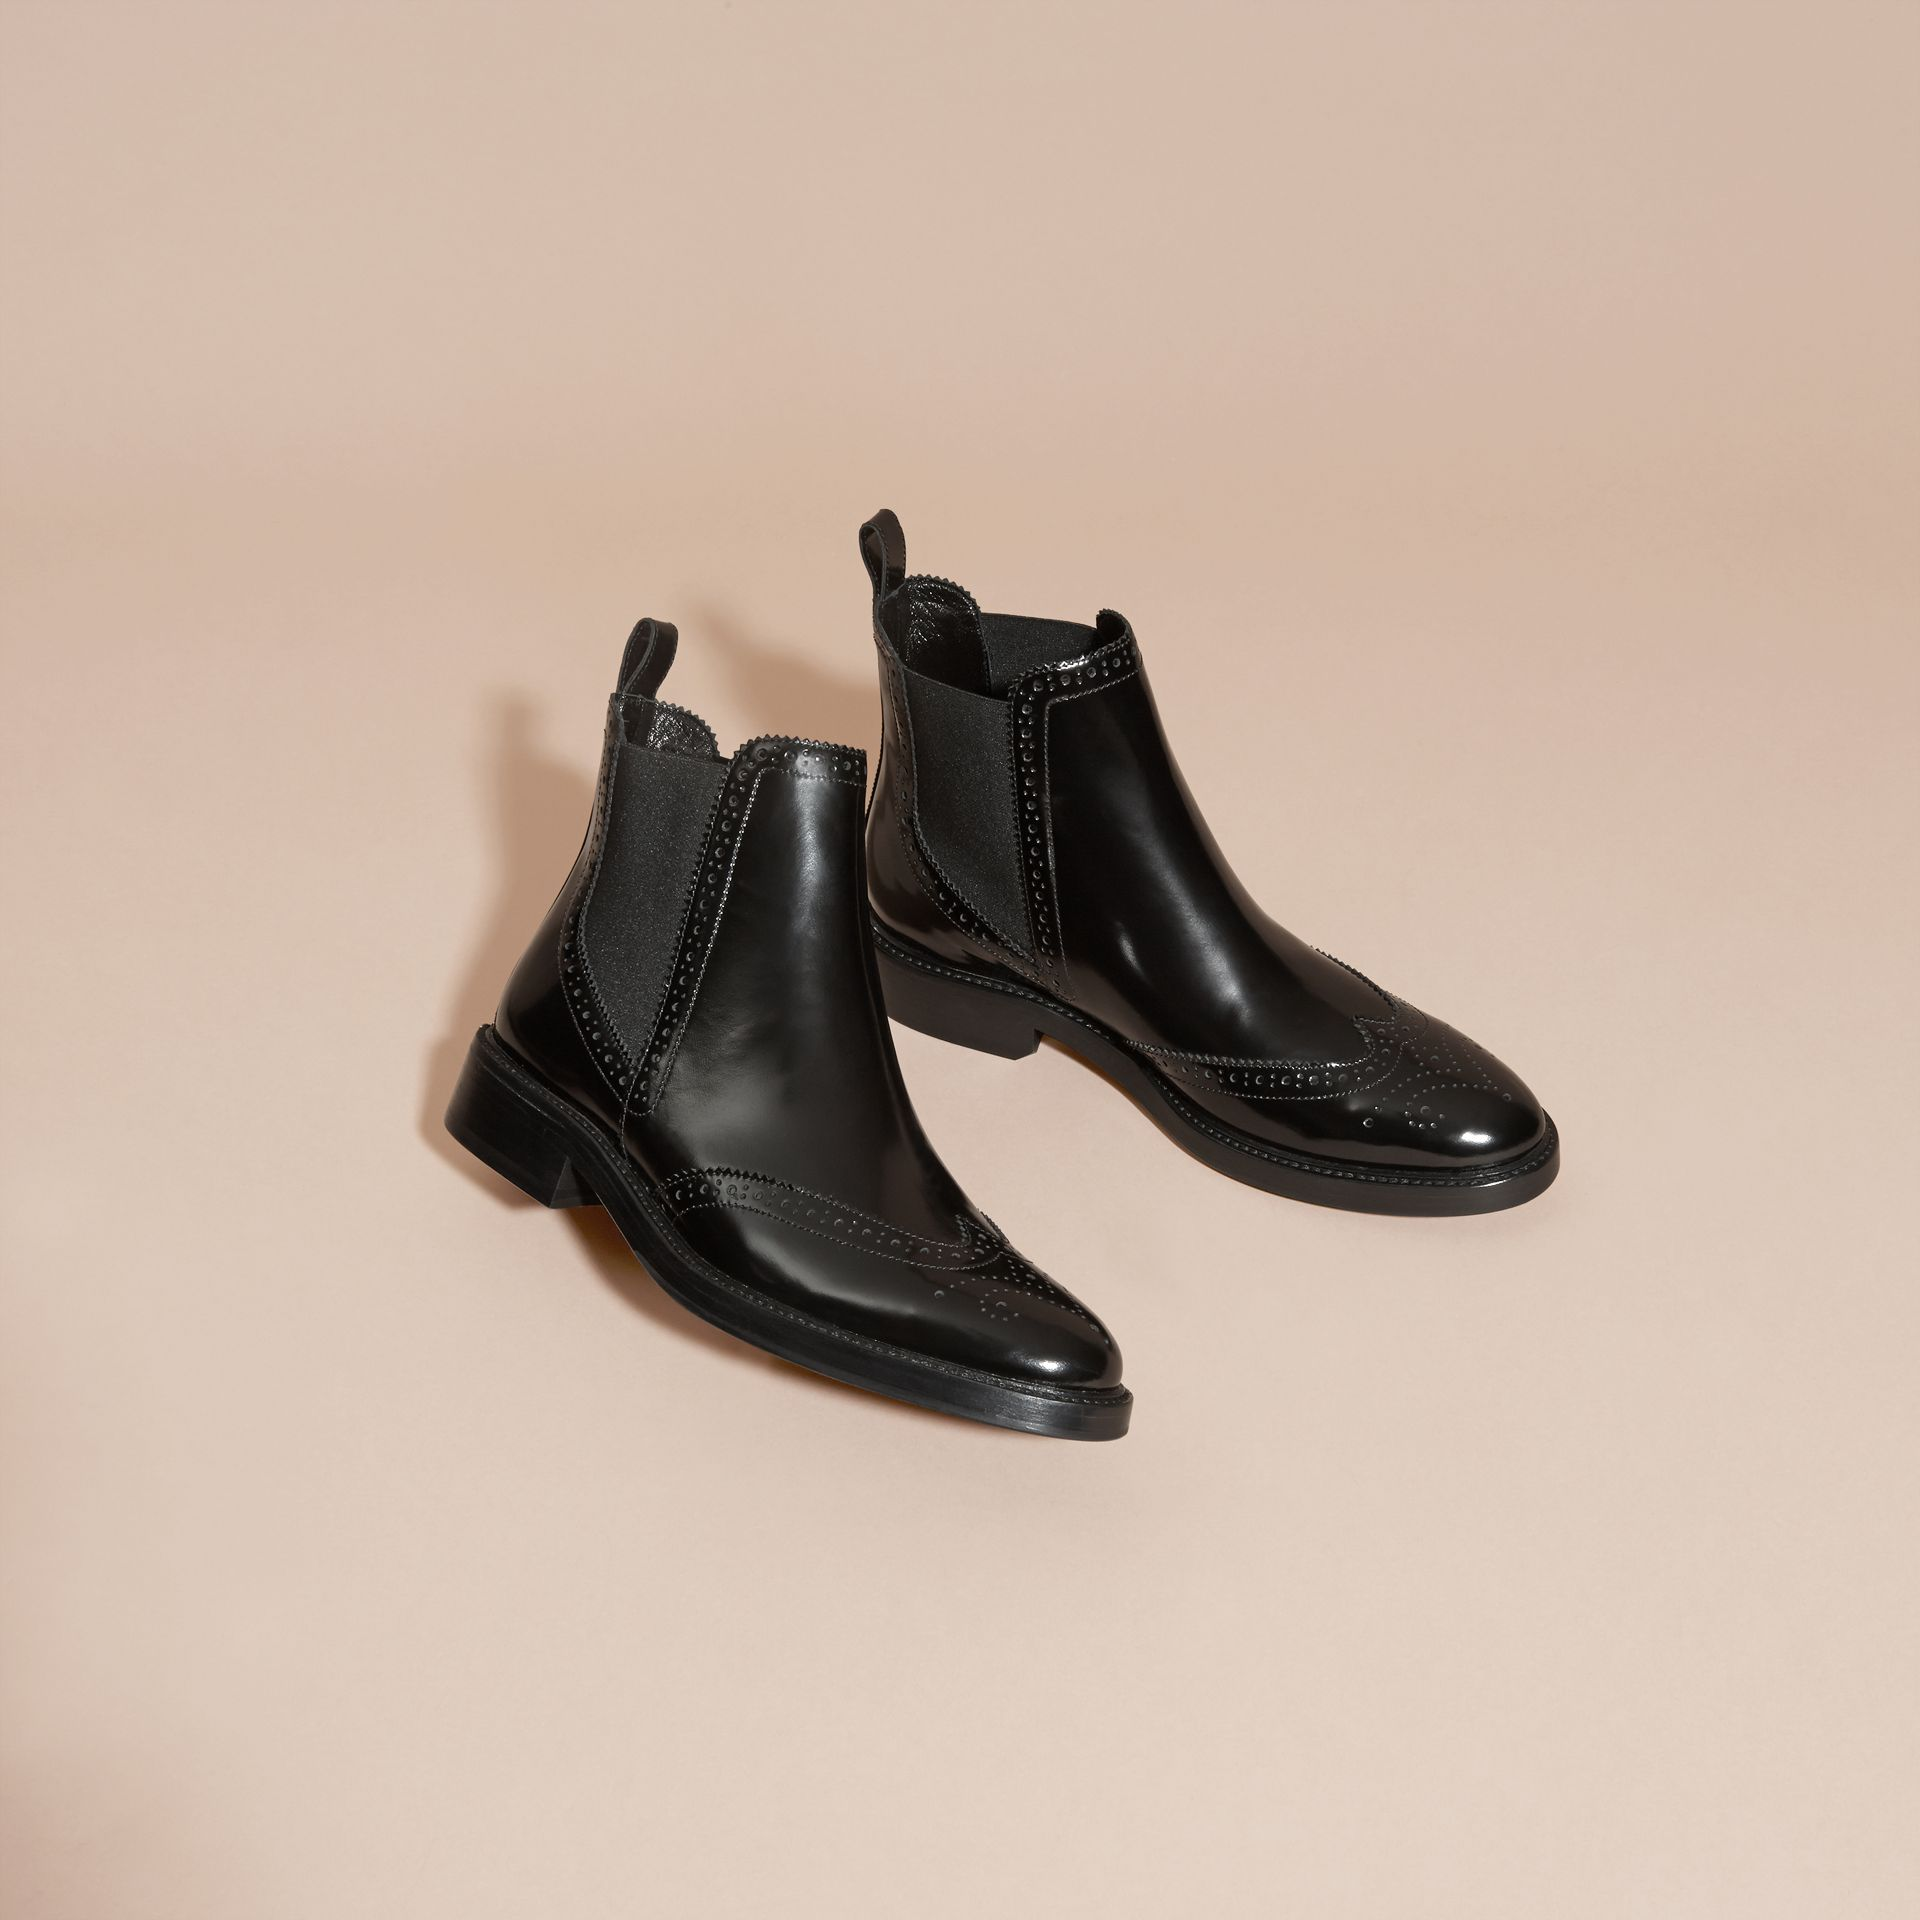 Leather Wingtip Chelsea Boots in Black - Women | Burberry - gallery image 4